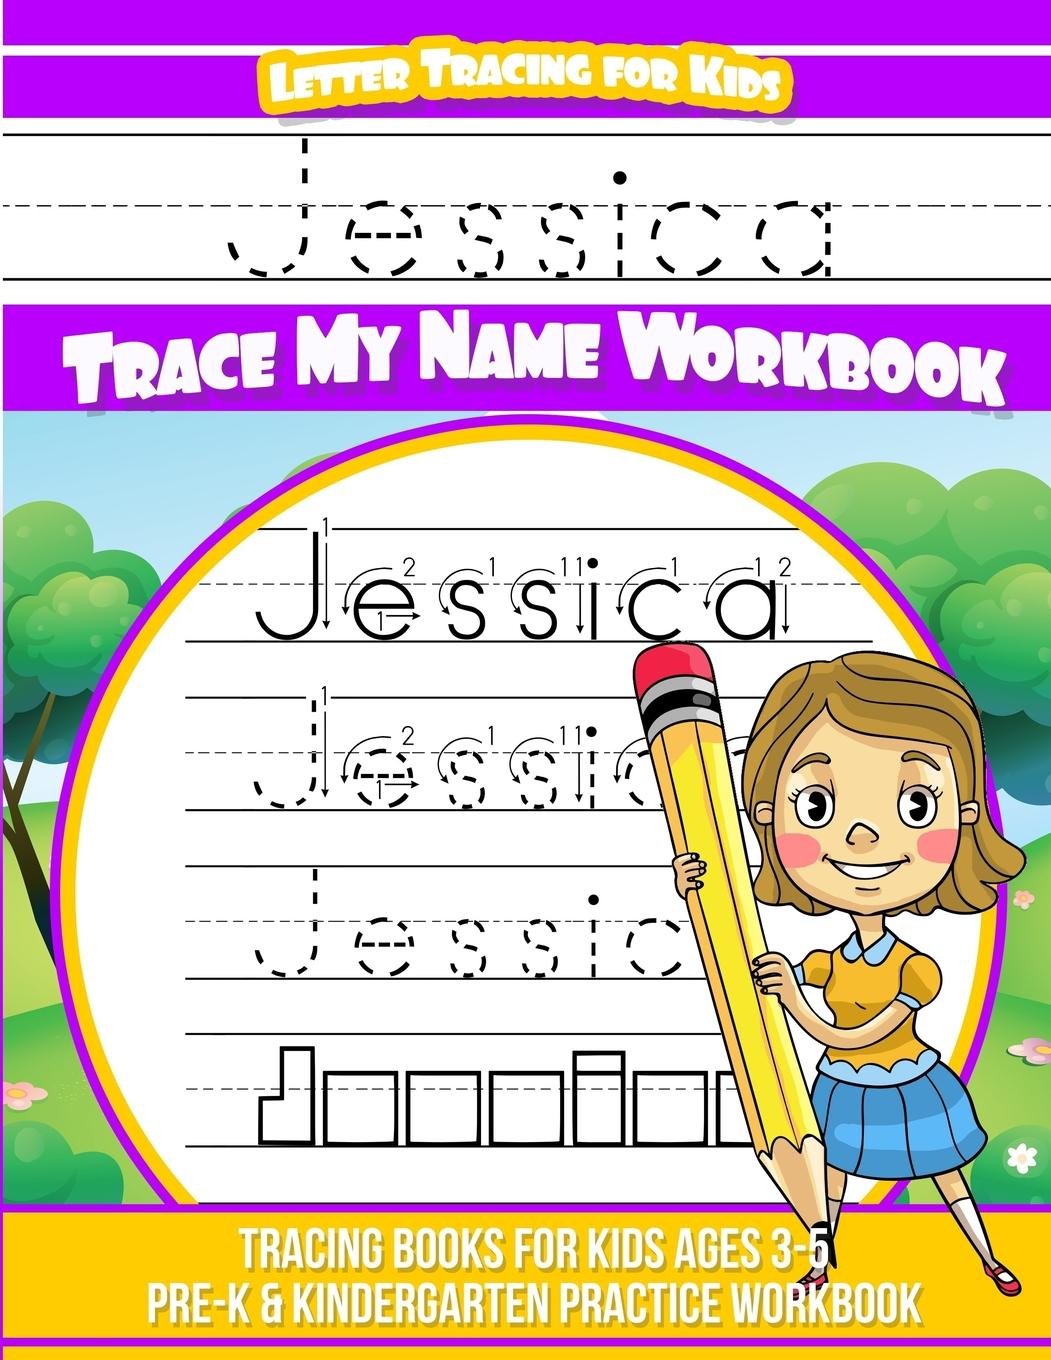 Jessica Letter Tracing For Kids Trace My Name Workbook : Tracing Books For  Kids Ages 3 - 5 Pre-K & Kindergarten Practice Workbook - Walmart